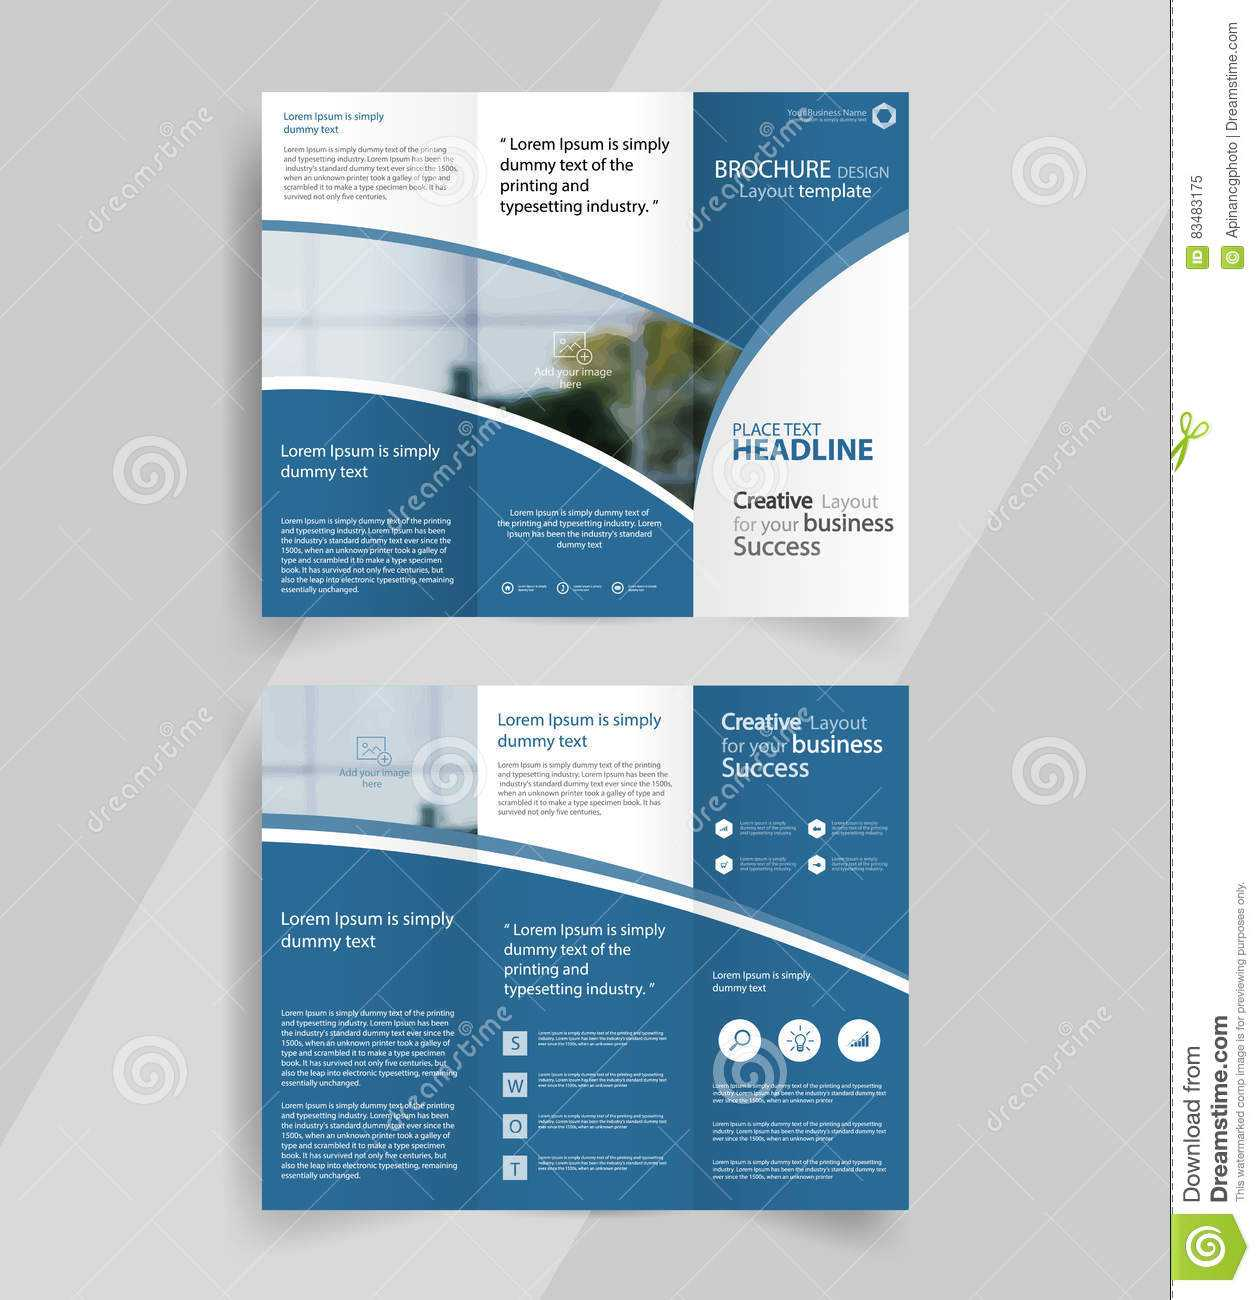 009 Tri Fold Brochure Template Free Download Ai Business Intended For Brochure Templates Adobe Illustrator